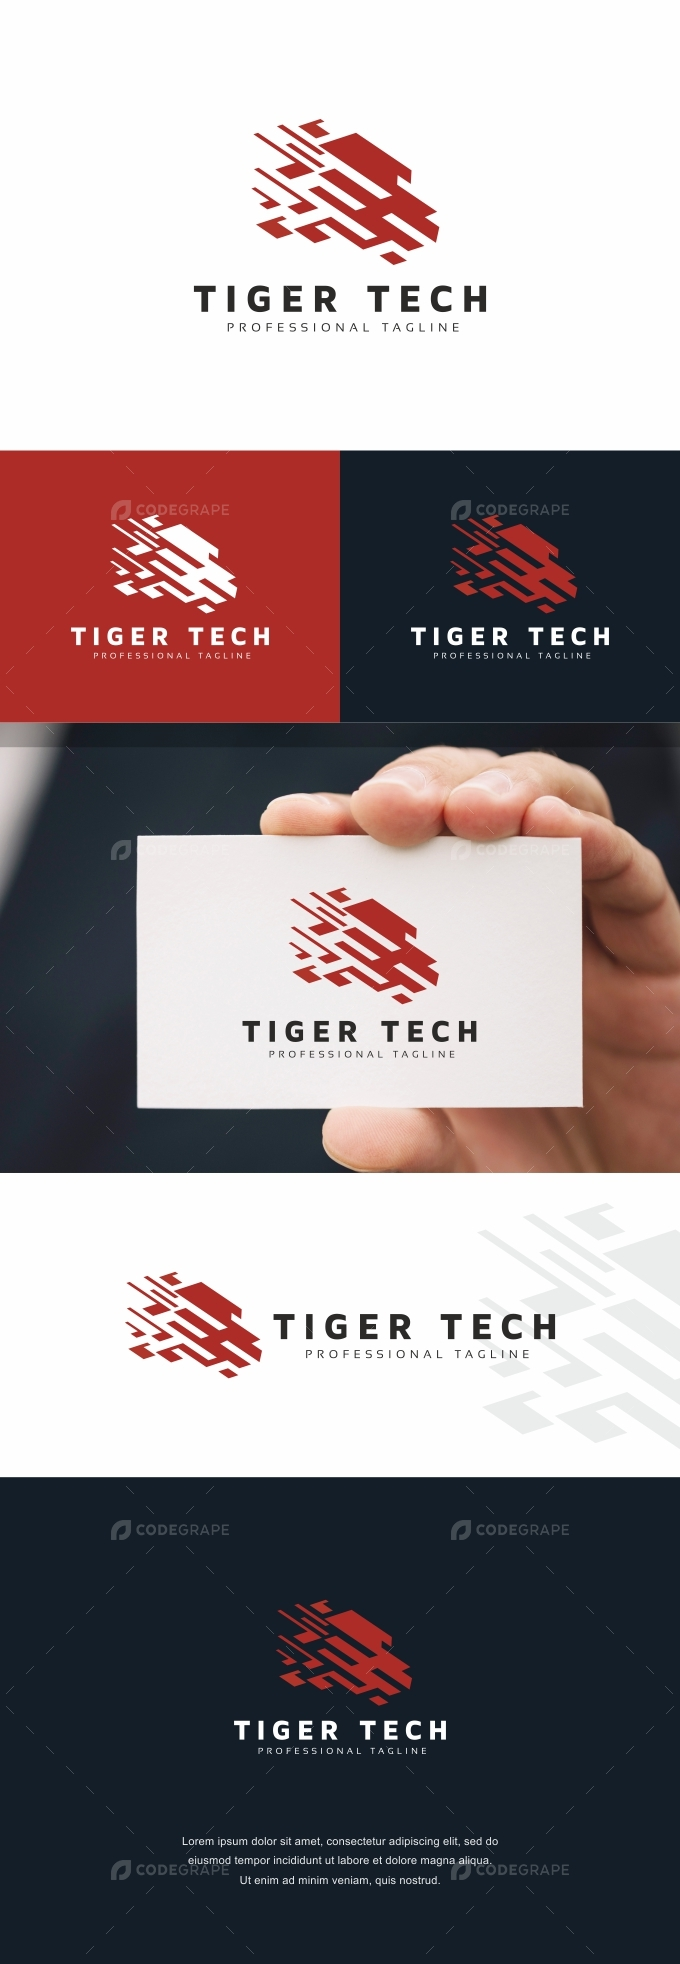 Tiger Tech Logo